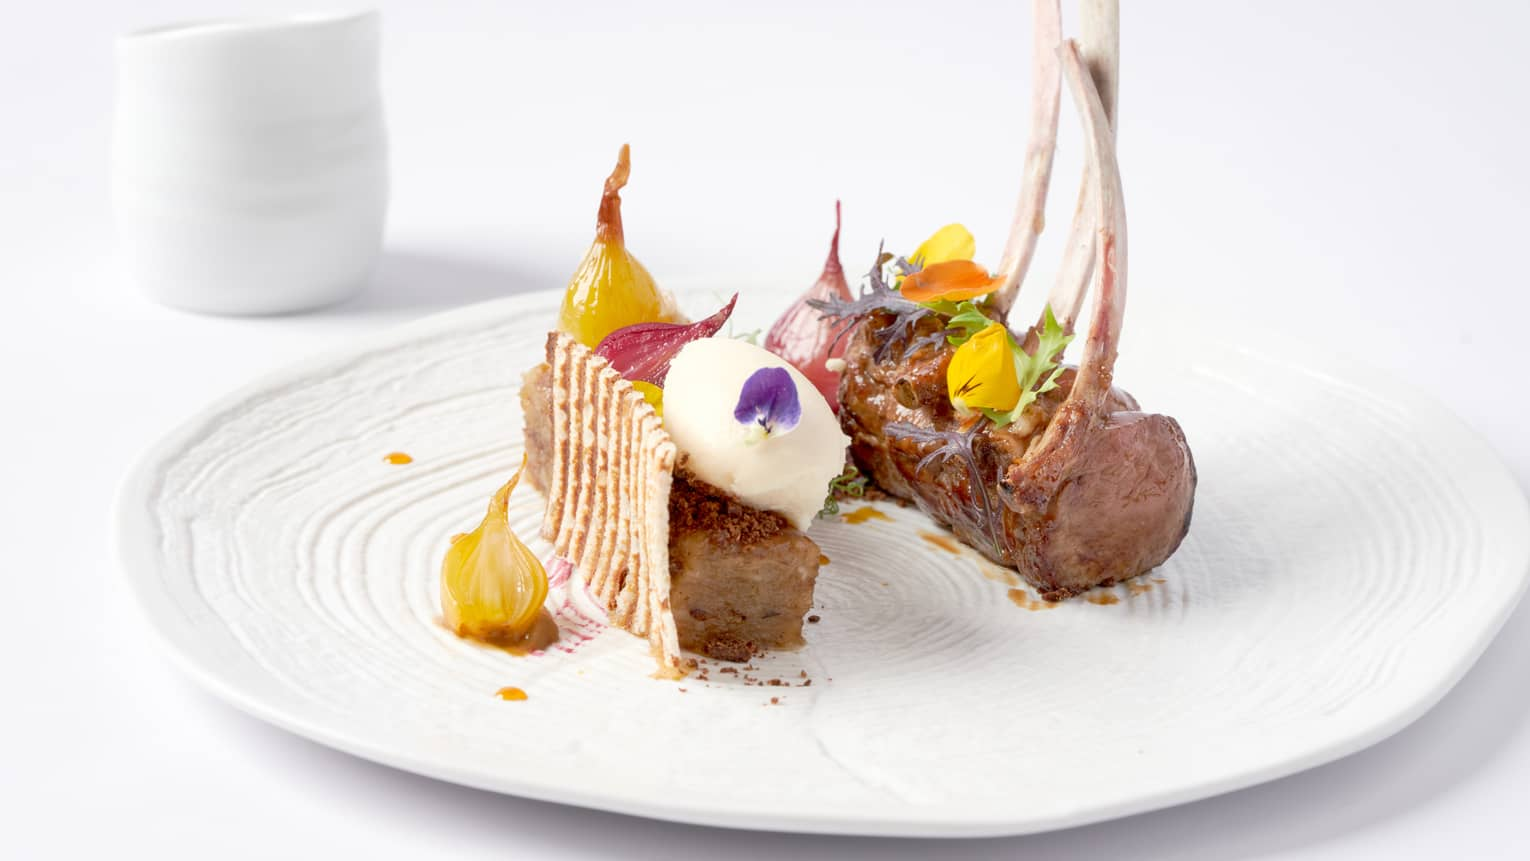 Gourmet rack of lamb topped with candied yellow beets, flowers